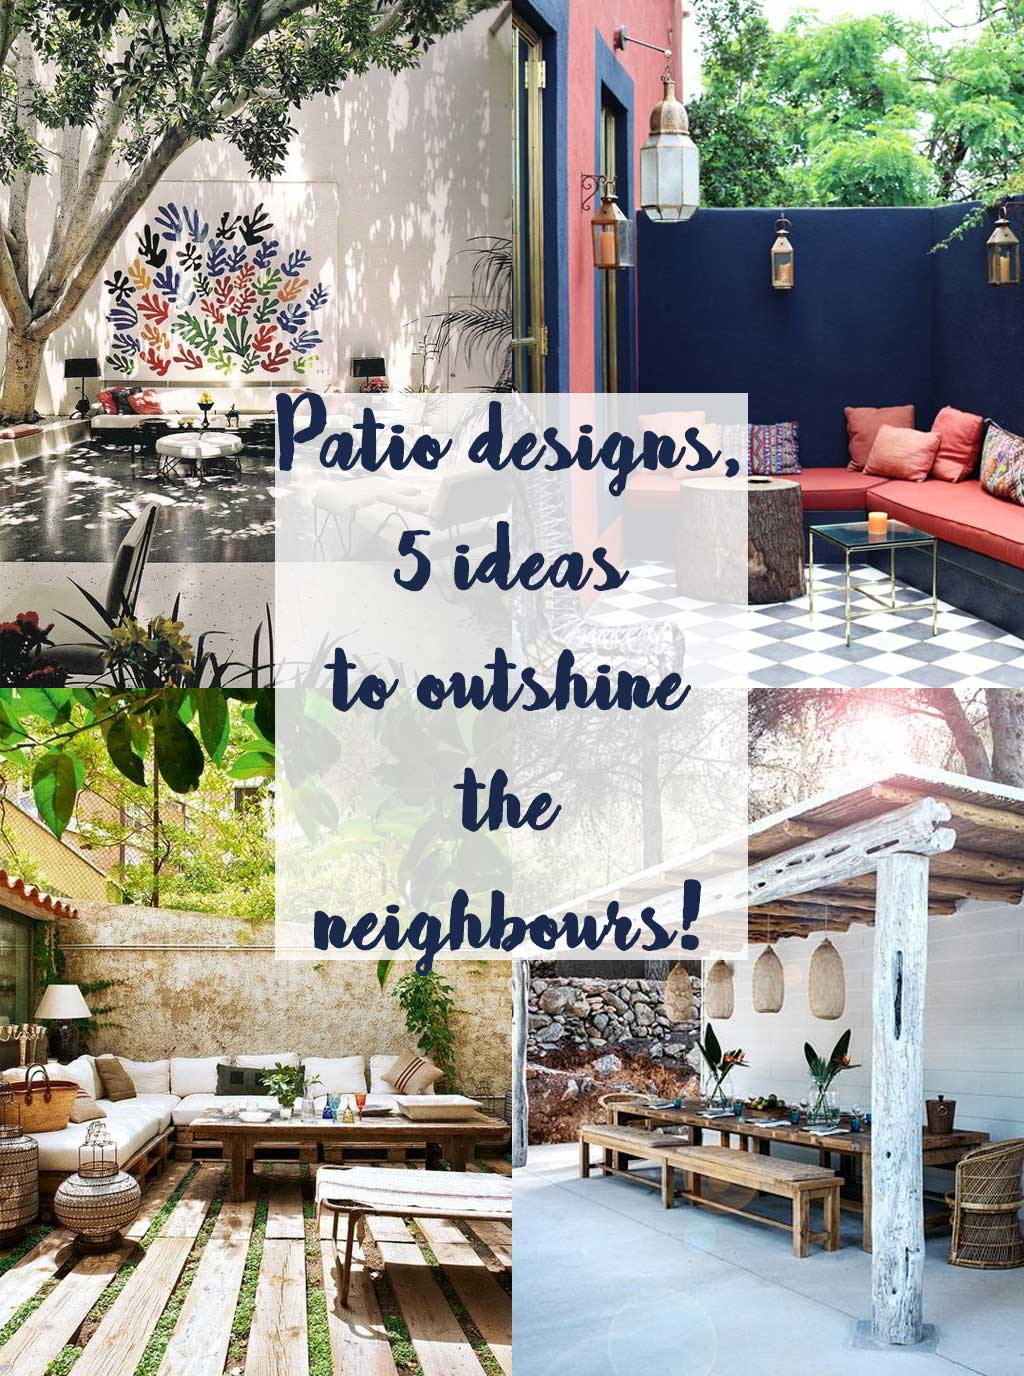 Patio Designs - 5 ideas to outshine the neighbours - Hutsly